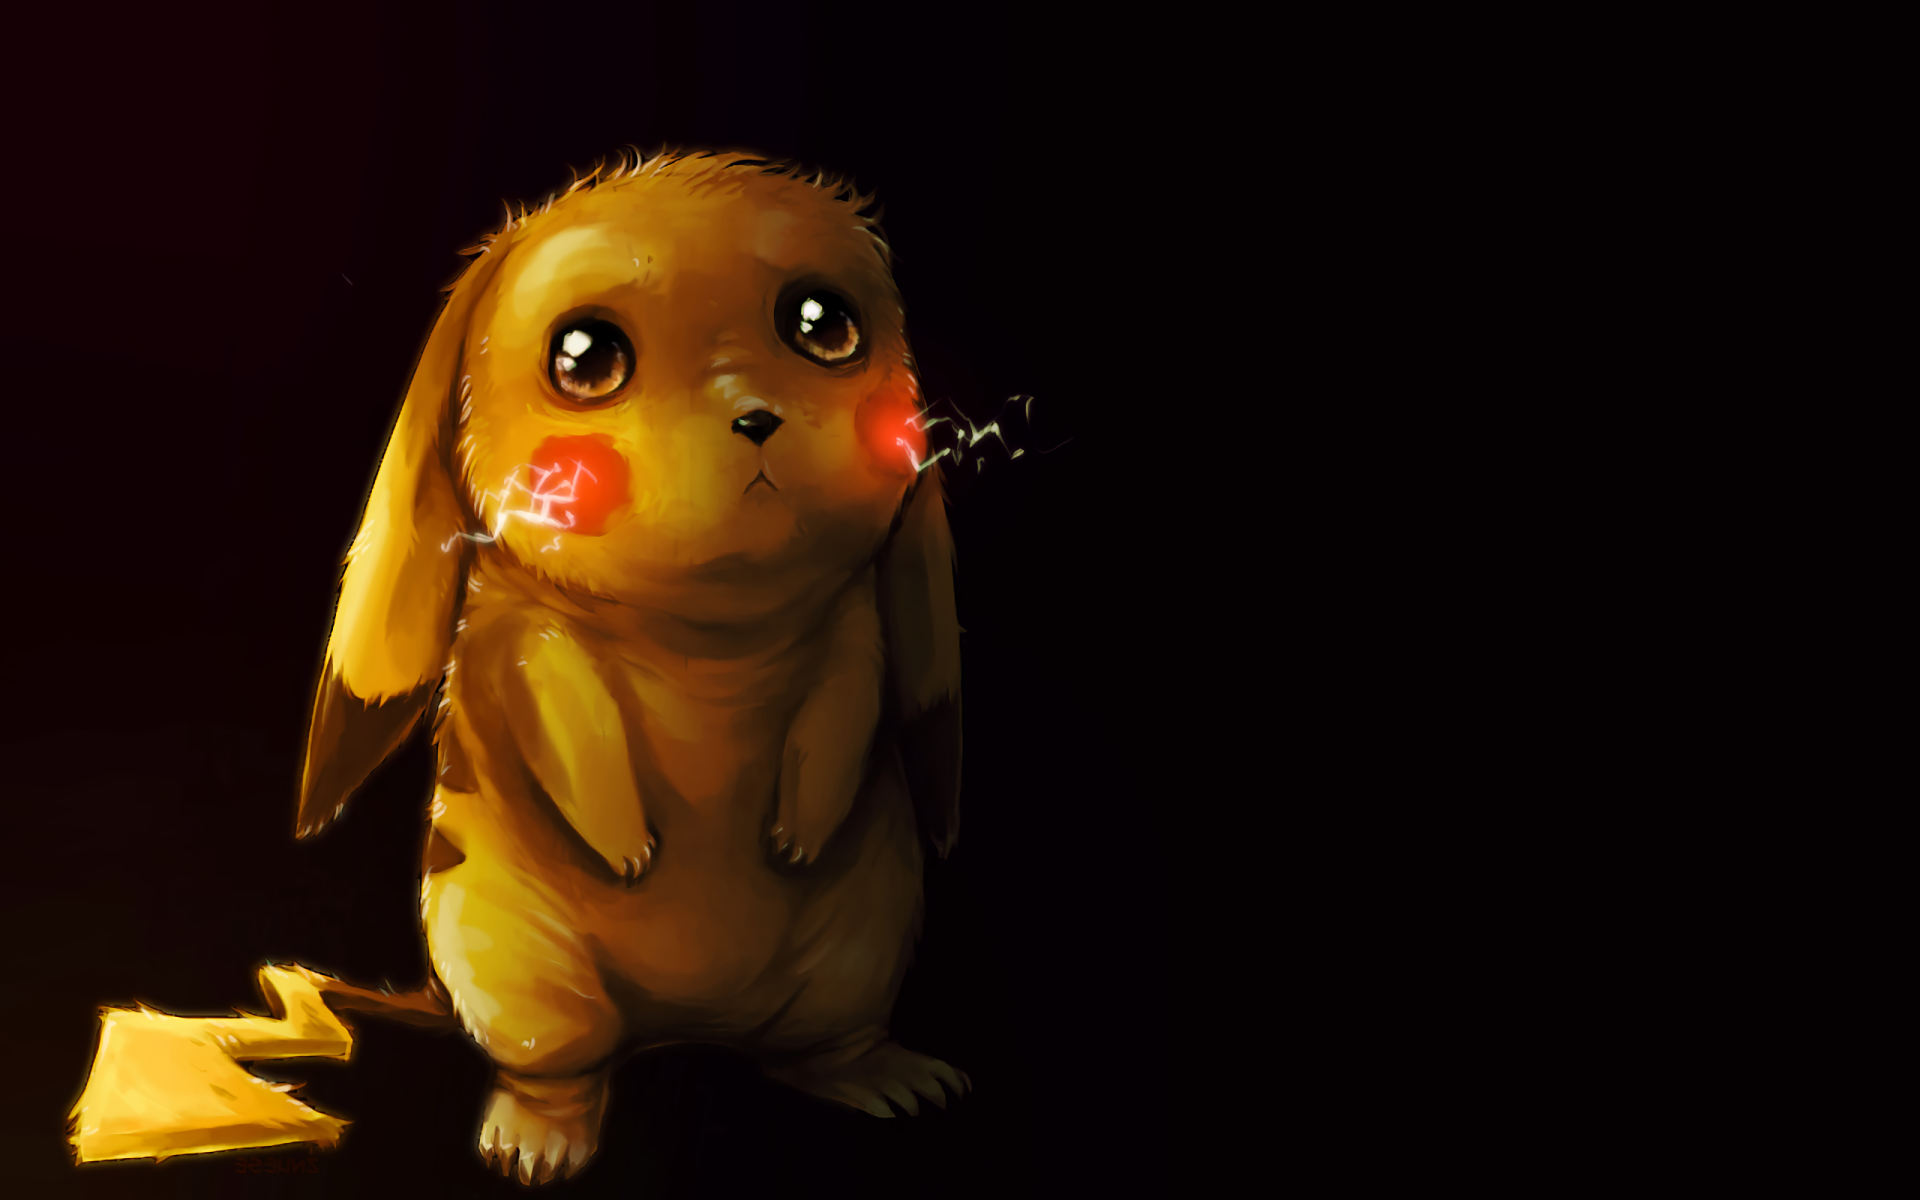 Anime - Pokémon  Pikachu Sad Cute Electric Pokémon Wallpaper